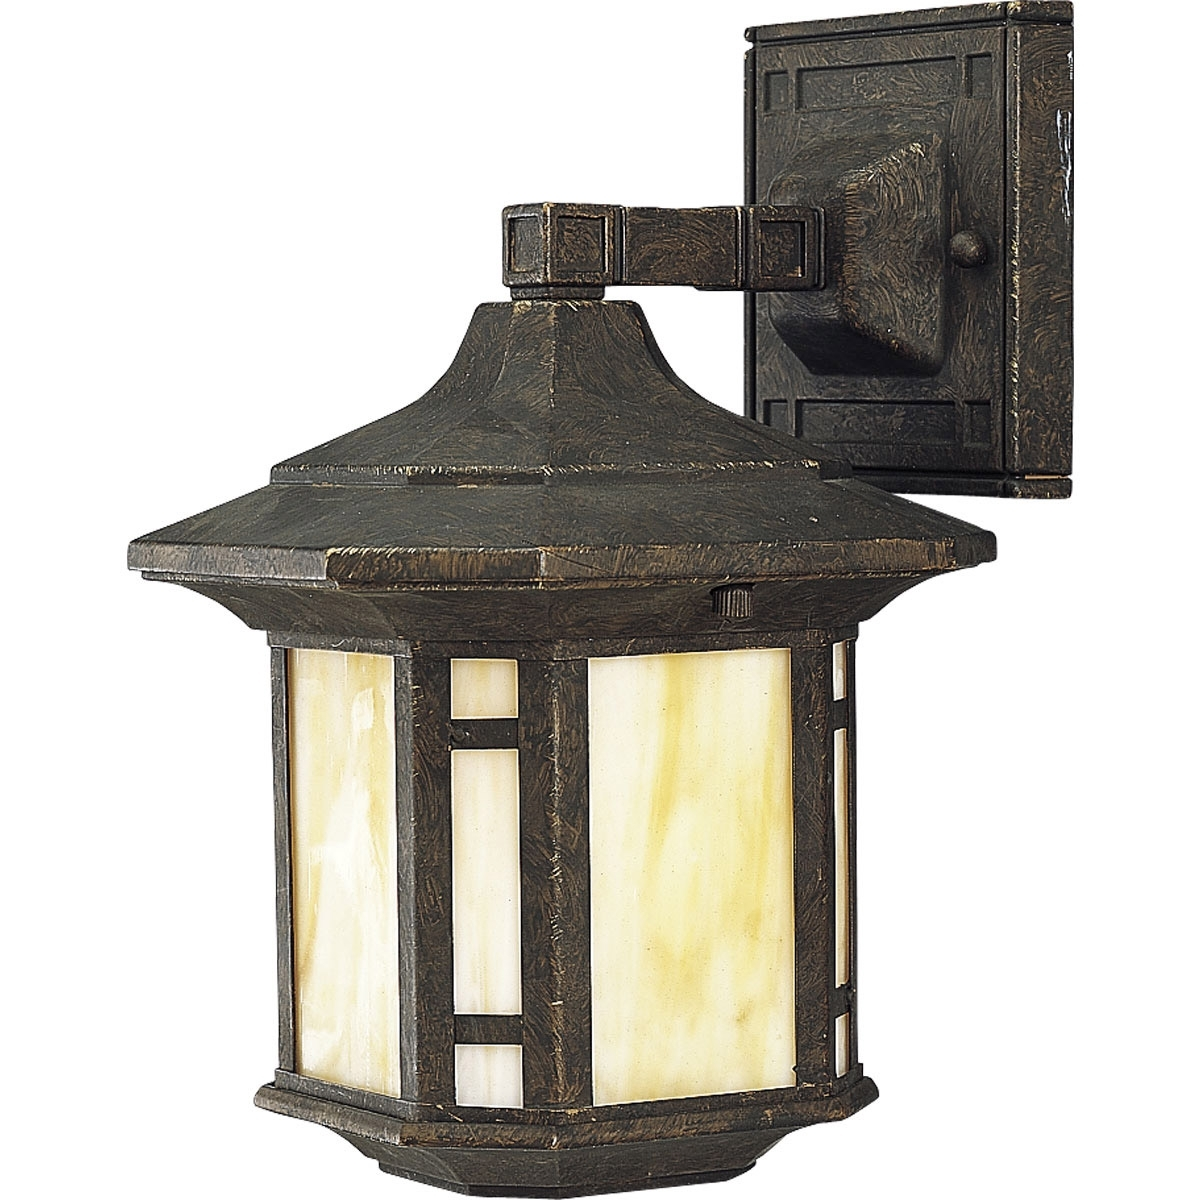 Most Popular Arts And Crafts Outdoor Wall Lighting Within Lighting P5628 46 Arts And Crafts Outdoor Wall Mount Lantern (View 13 of 20)